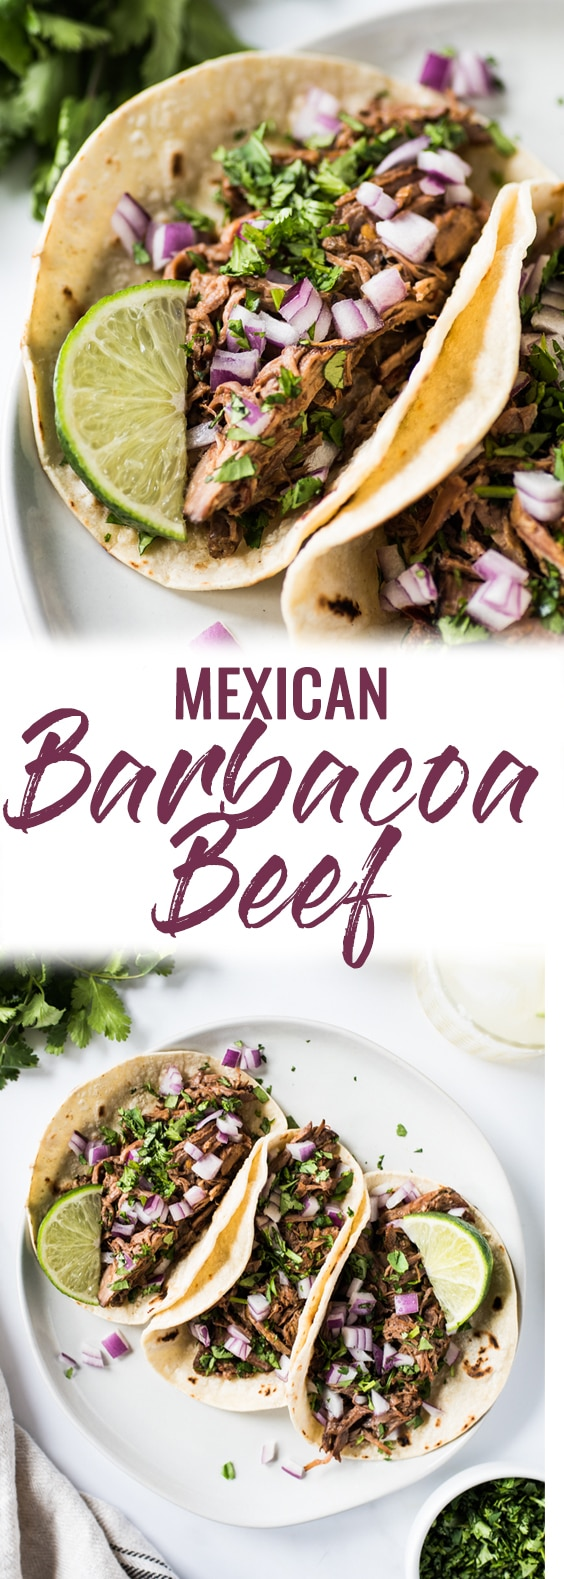 This Mexican Barbacoa Recipe is made in the slow cooker or Instant Pot for easy and flavorful shredded beef that can be served in tacos, salads, burritos and more! (gluten free, low carb, paleo) #barbacoa #cincodemayo #mexican